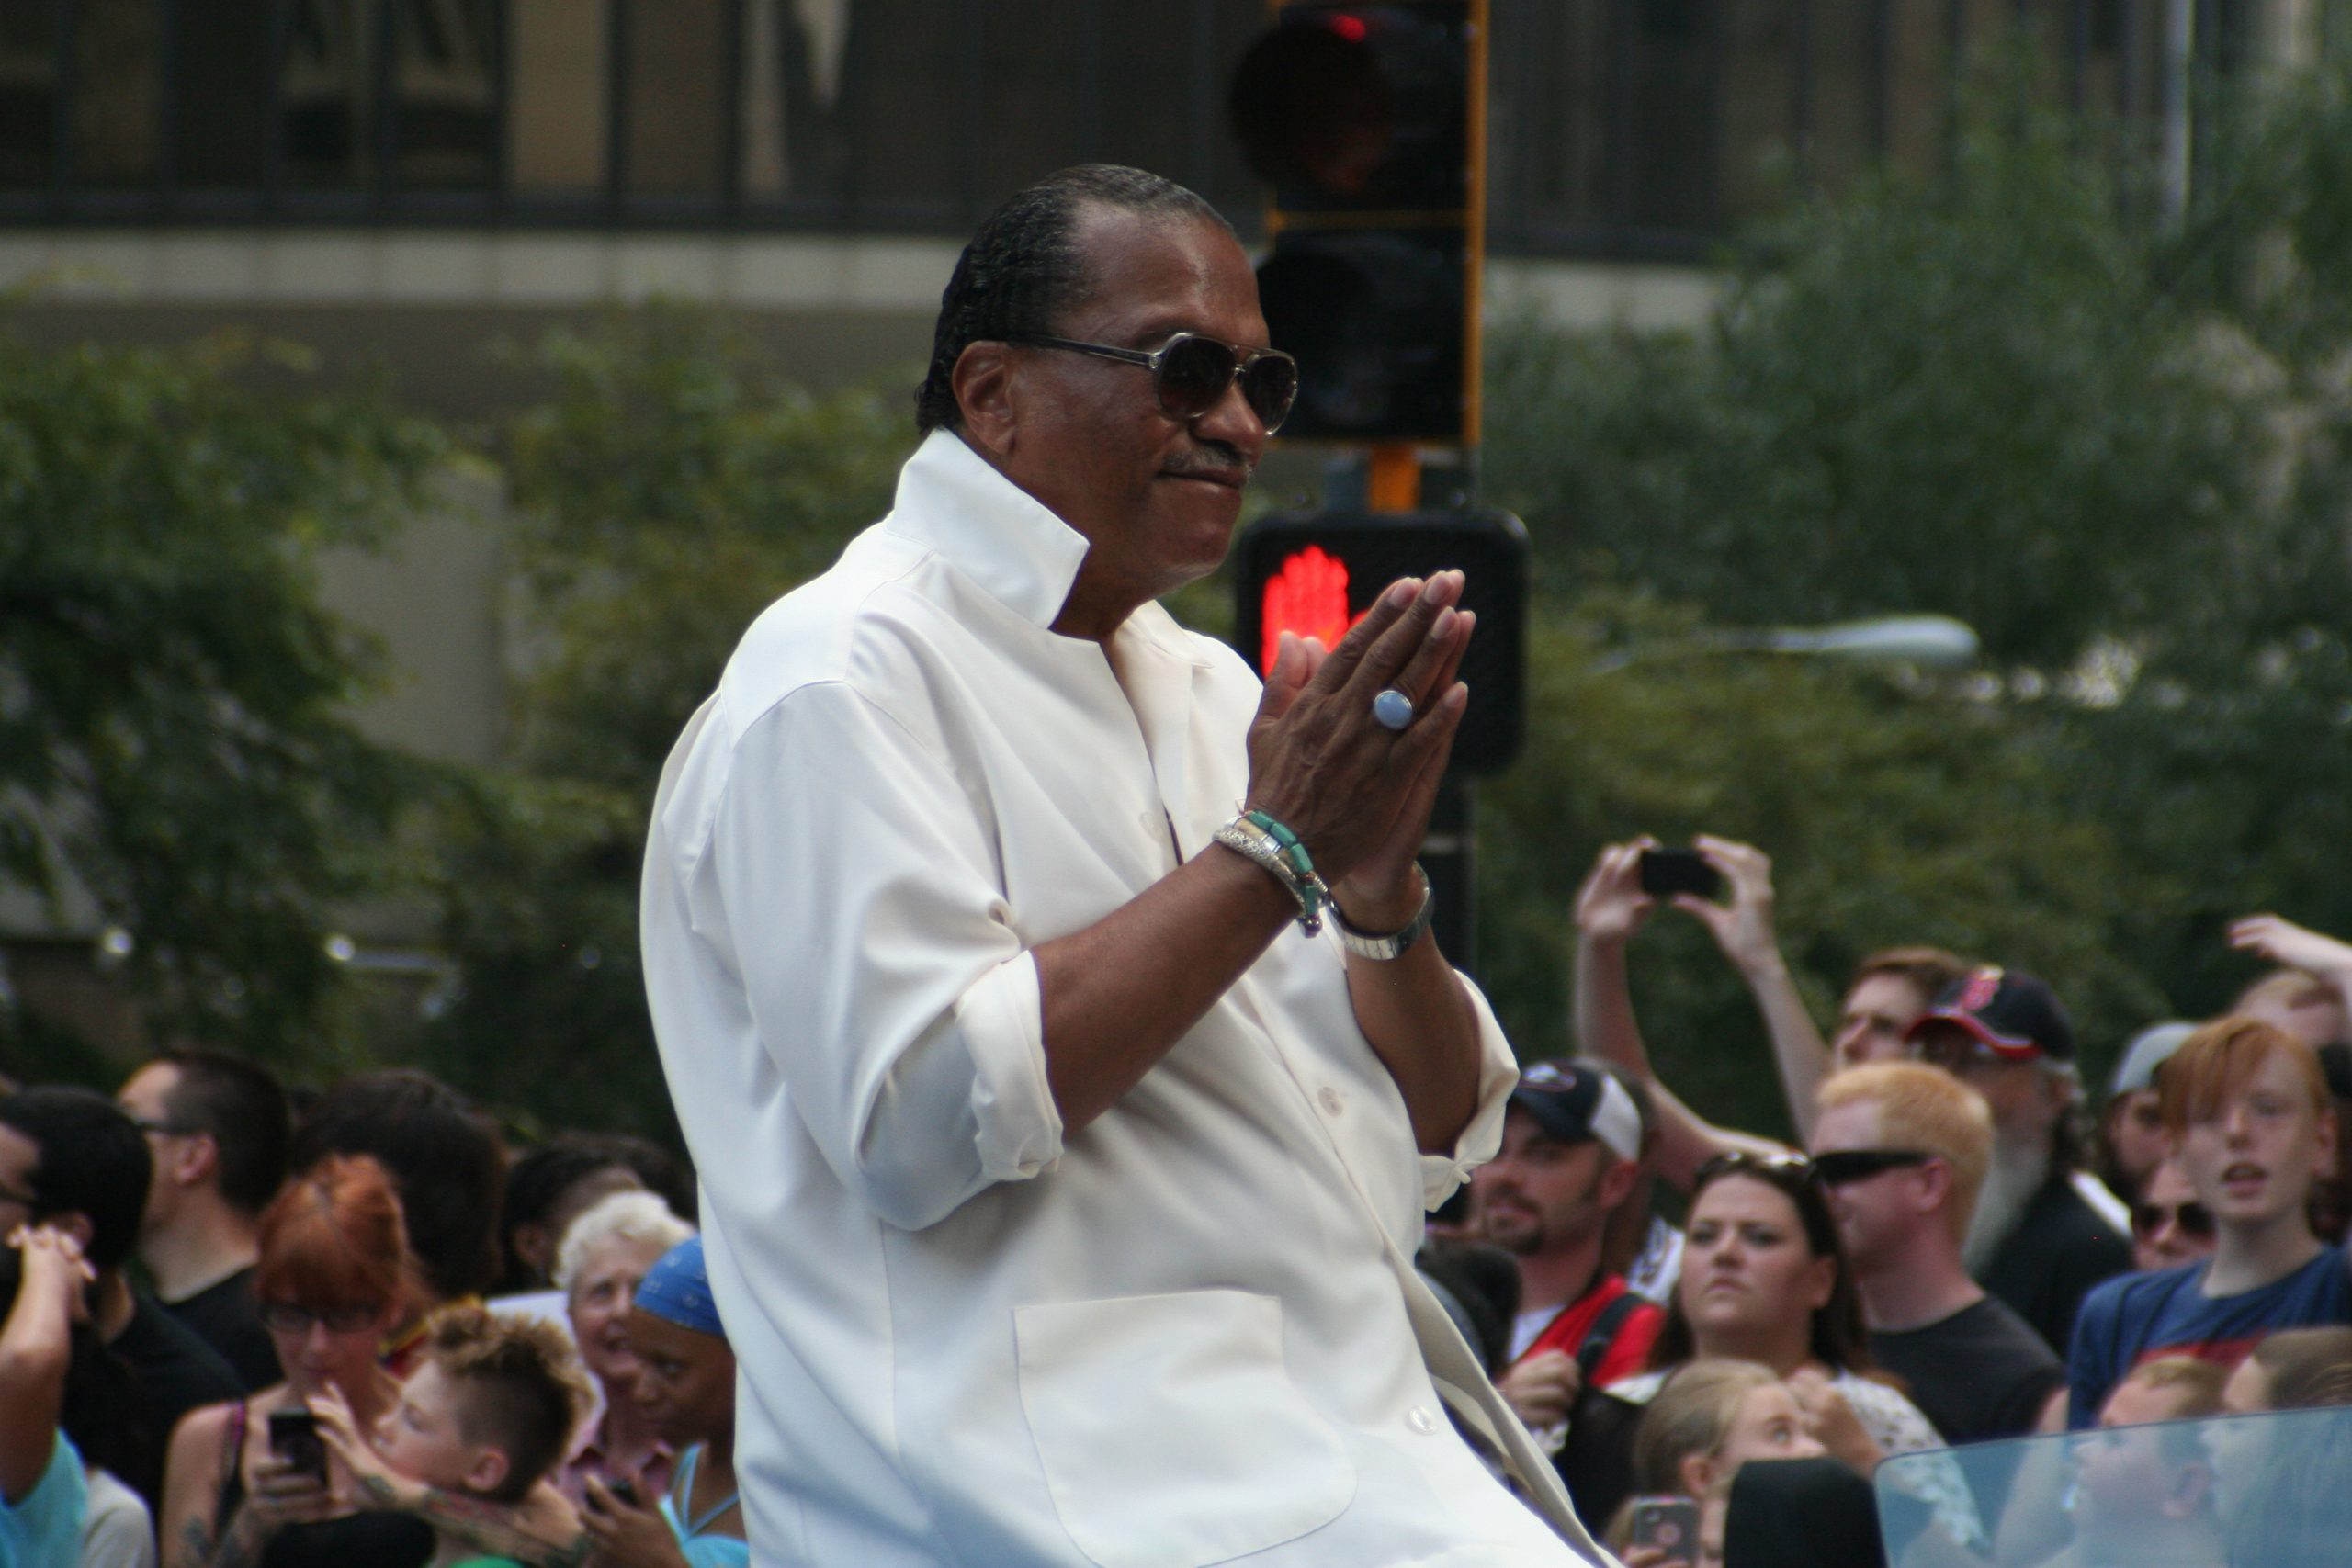 Billy Dee Williams identifies as gender fluid, reveals acceptance of multiple pronouns